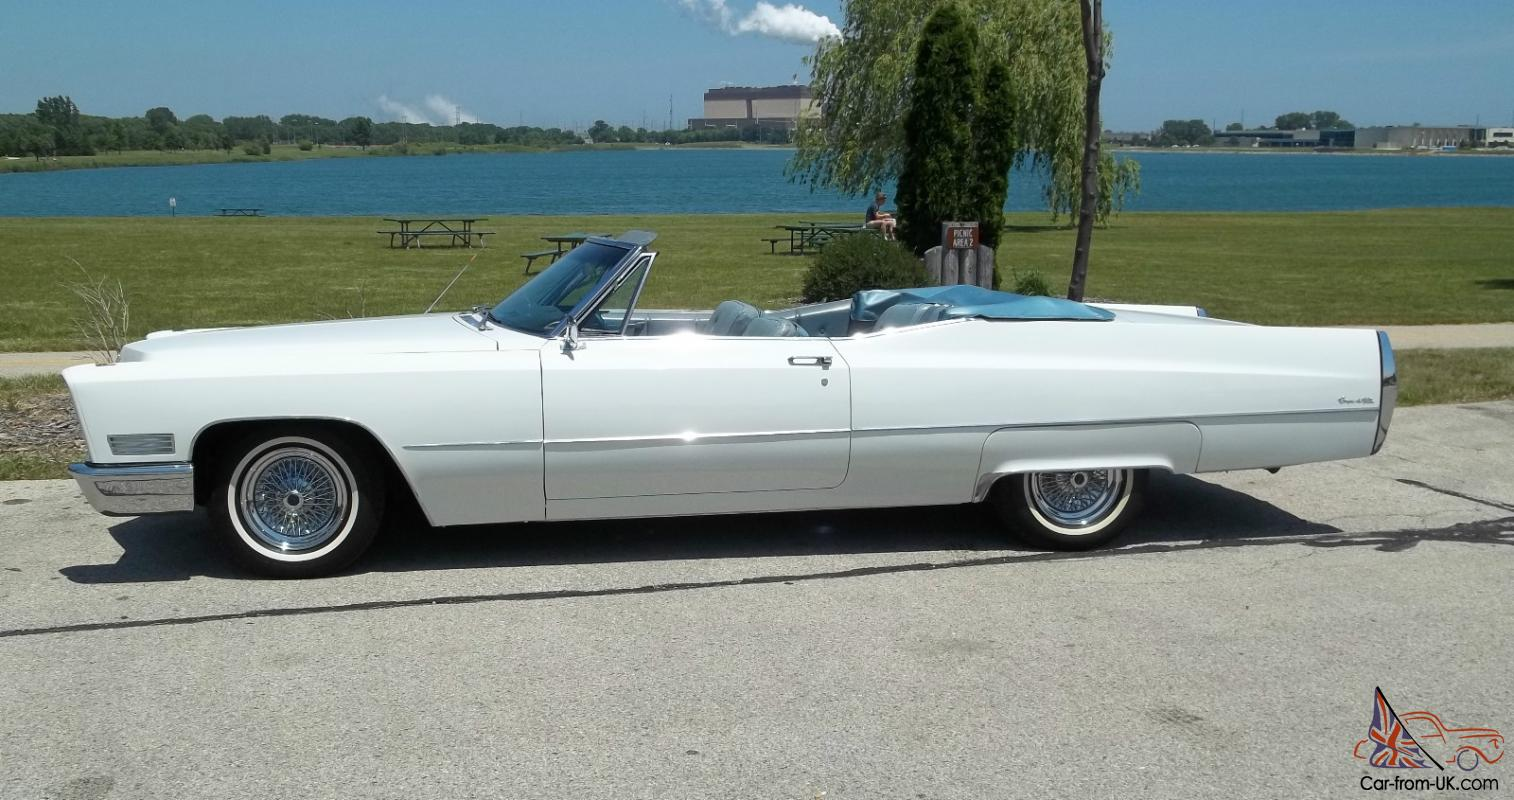 1956 cadillac interior related keywords amp suggestions - 1967 Cadillac De Ville Convertible Excellent Condition